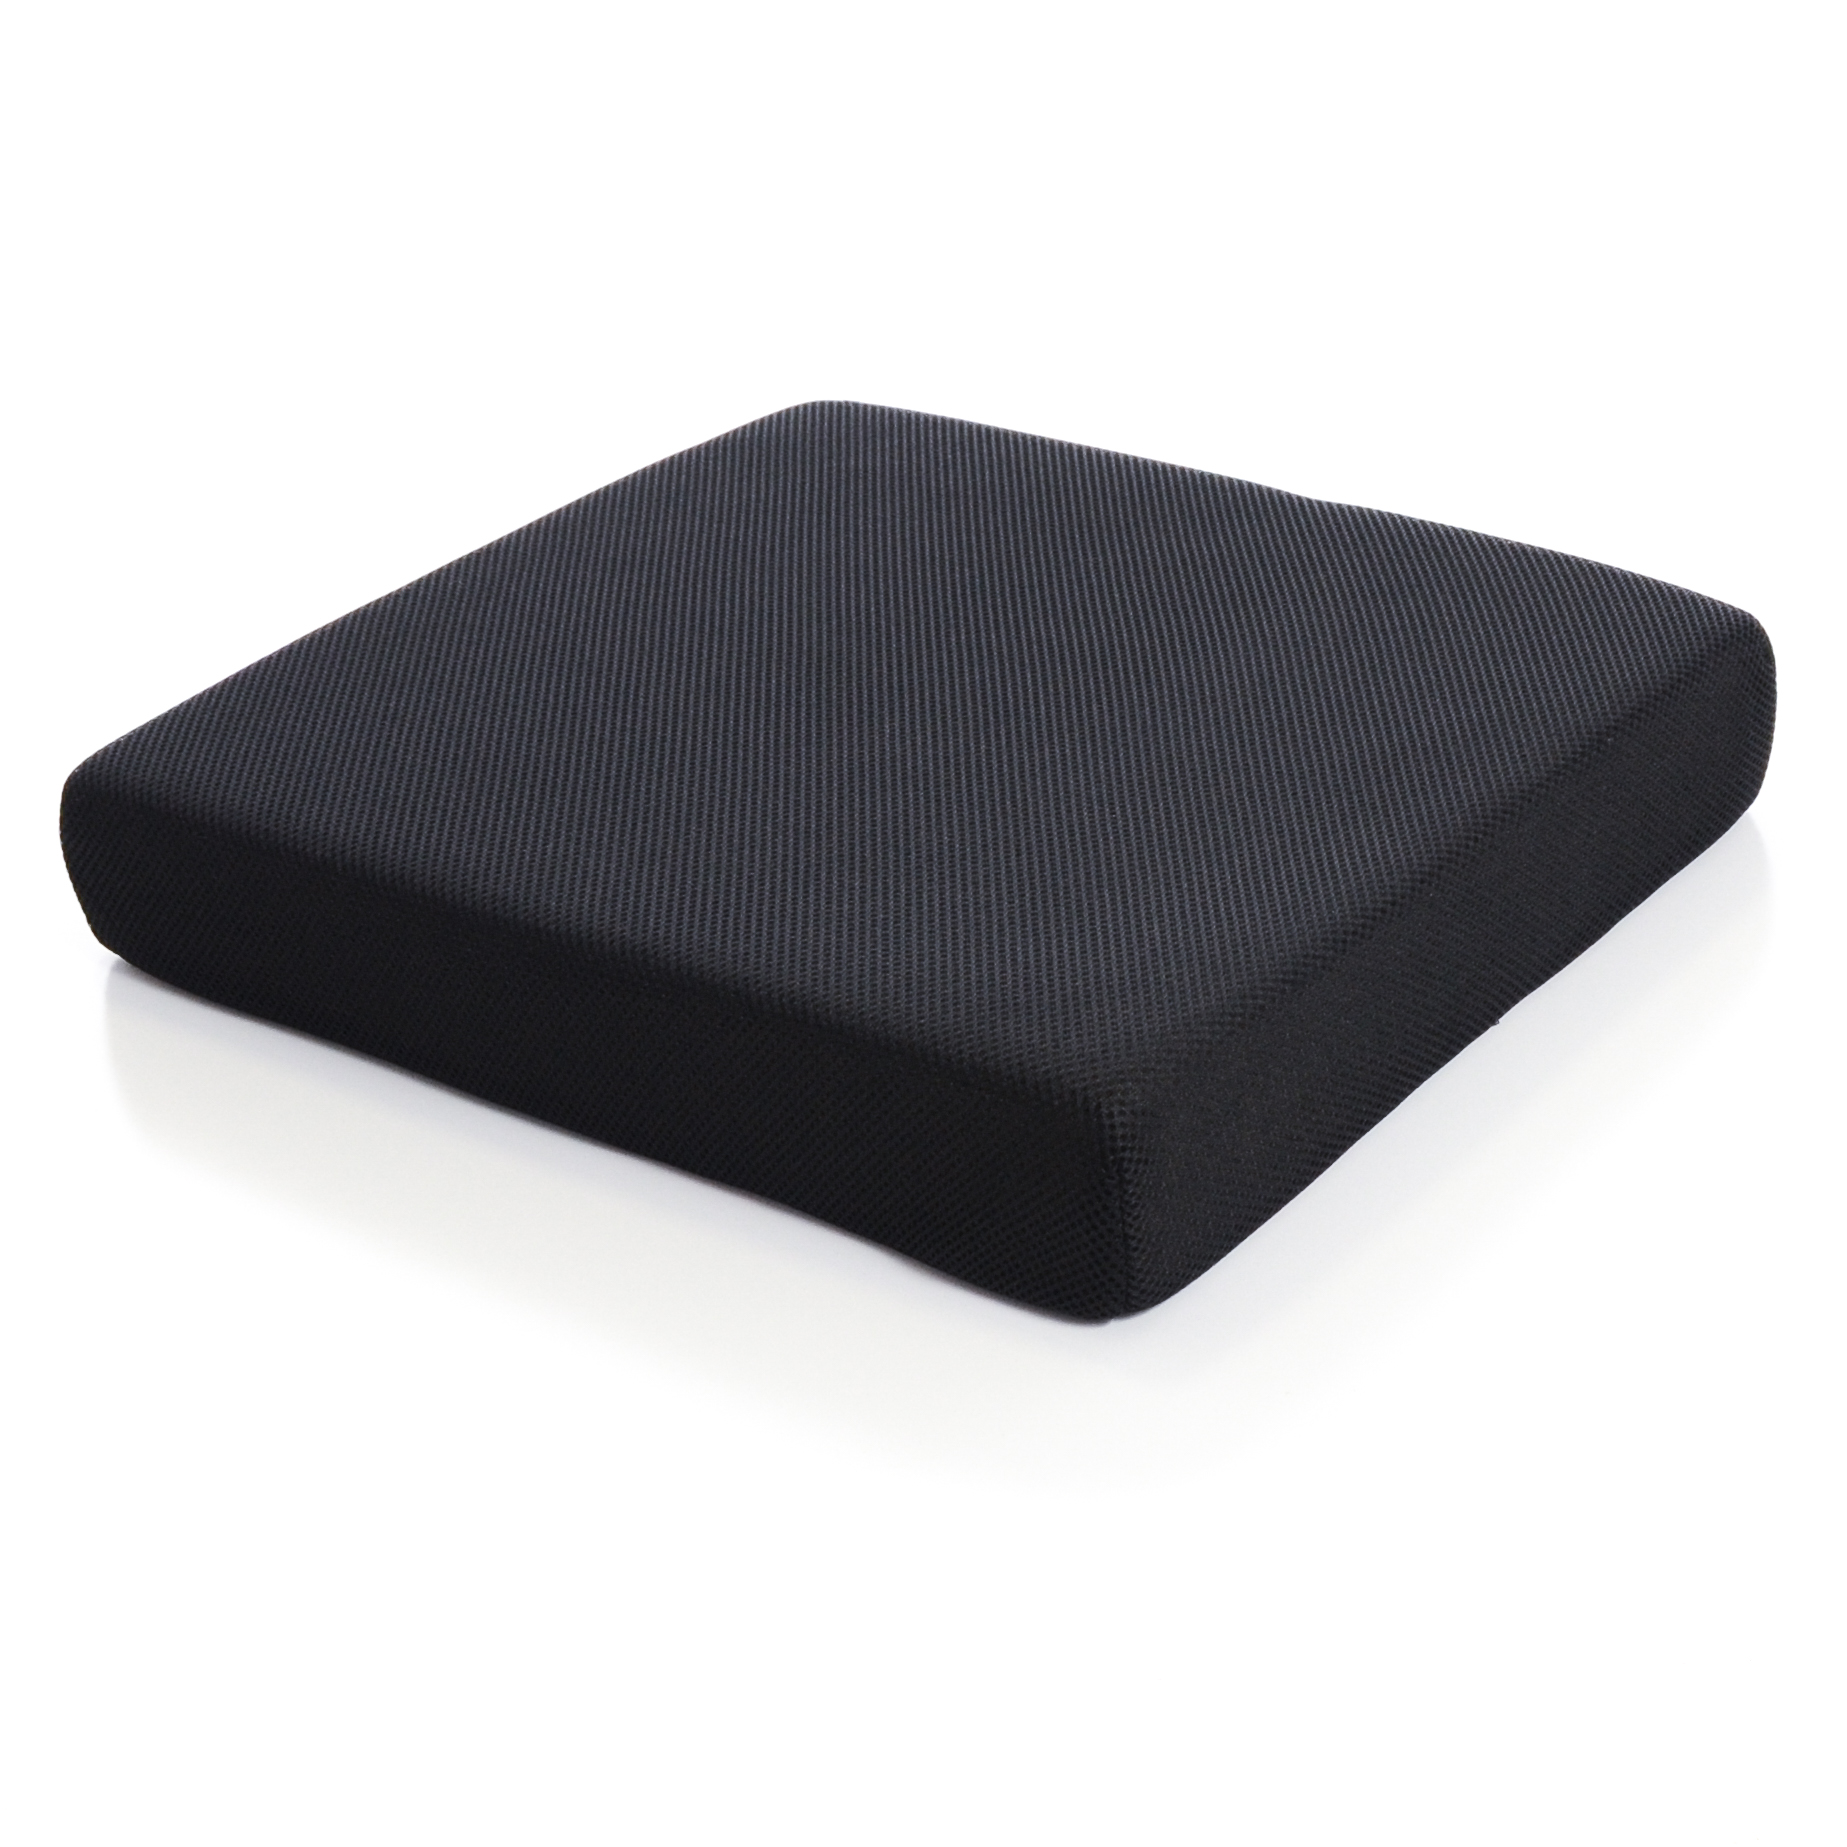 Foam Chair Cushions Milliard Memory Foam Seat Cushion Chair Pad 18 X 16 X 3